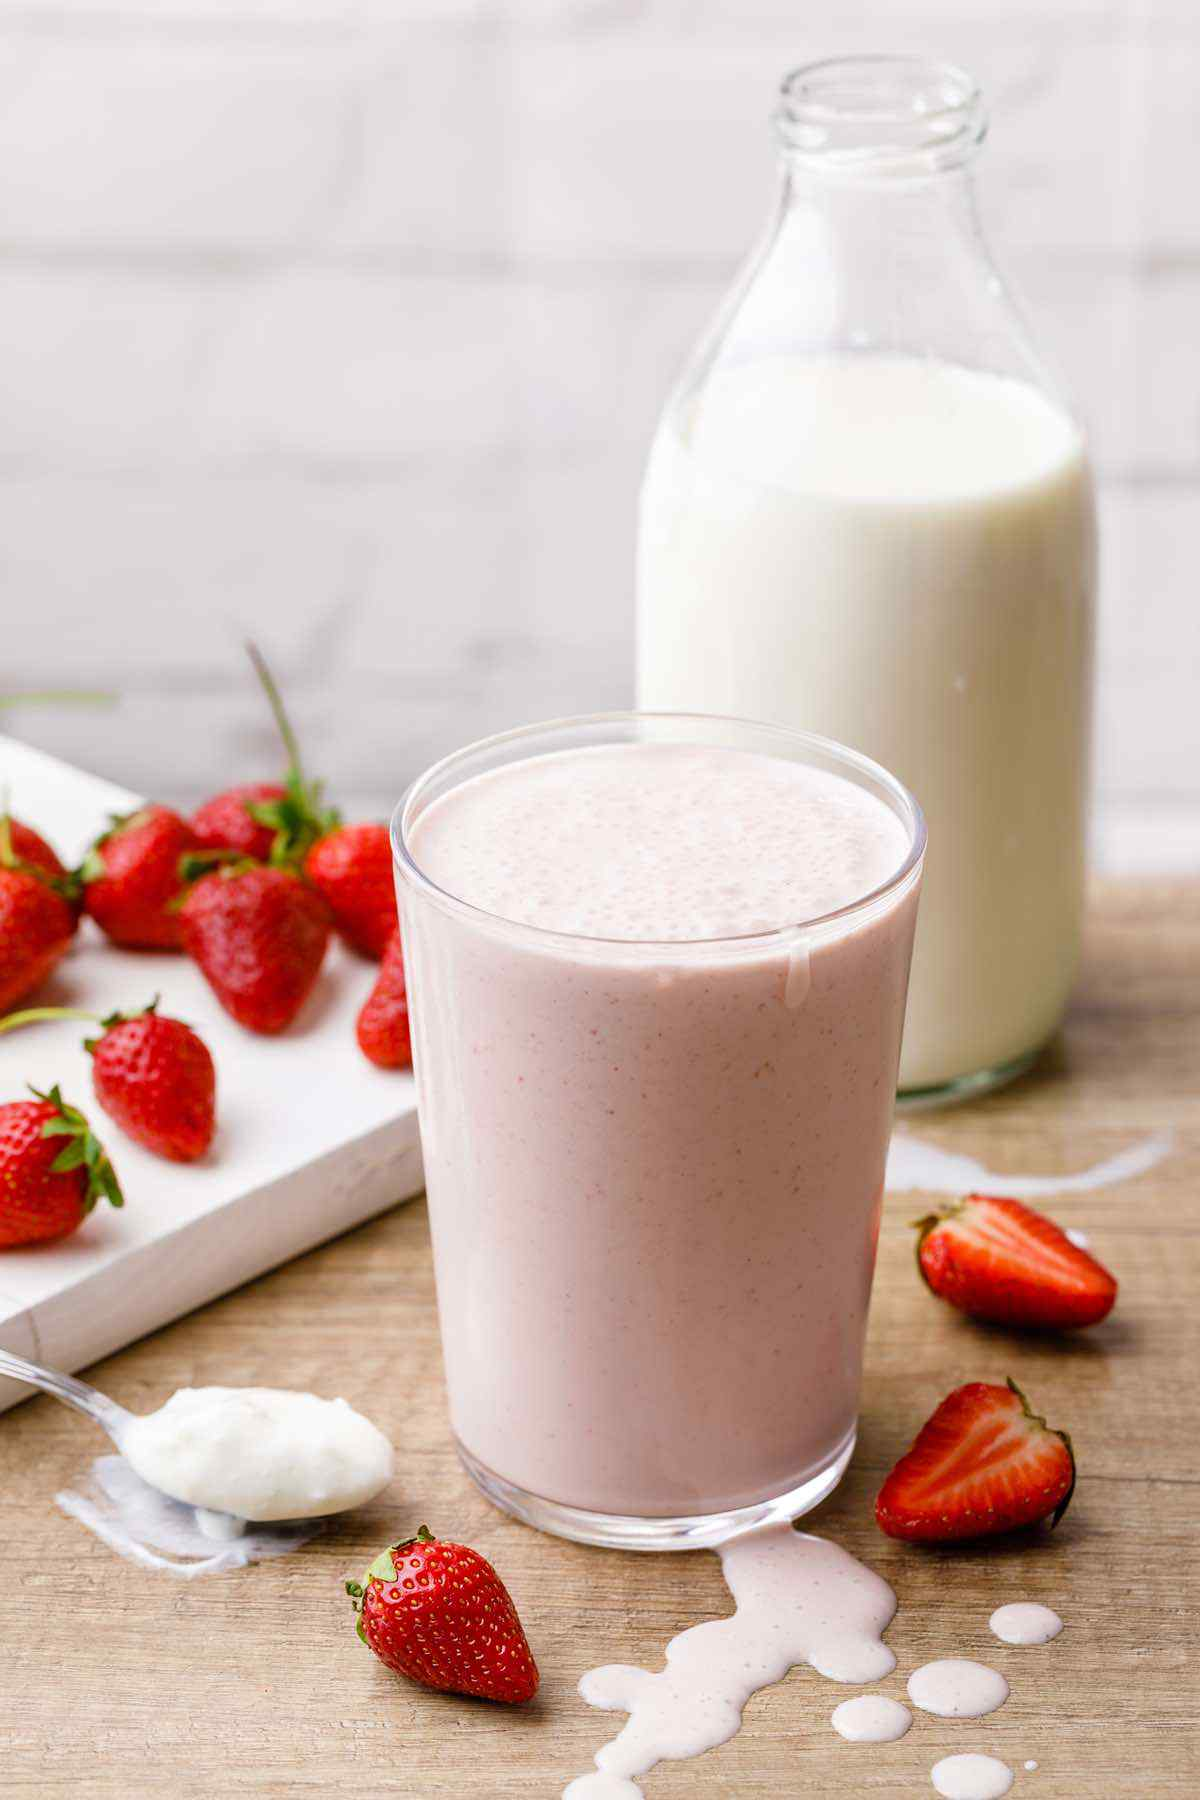 Easy 3-Ingredient Strawberry Smoothie